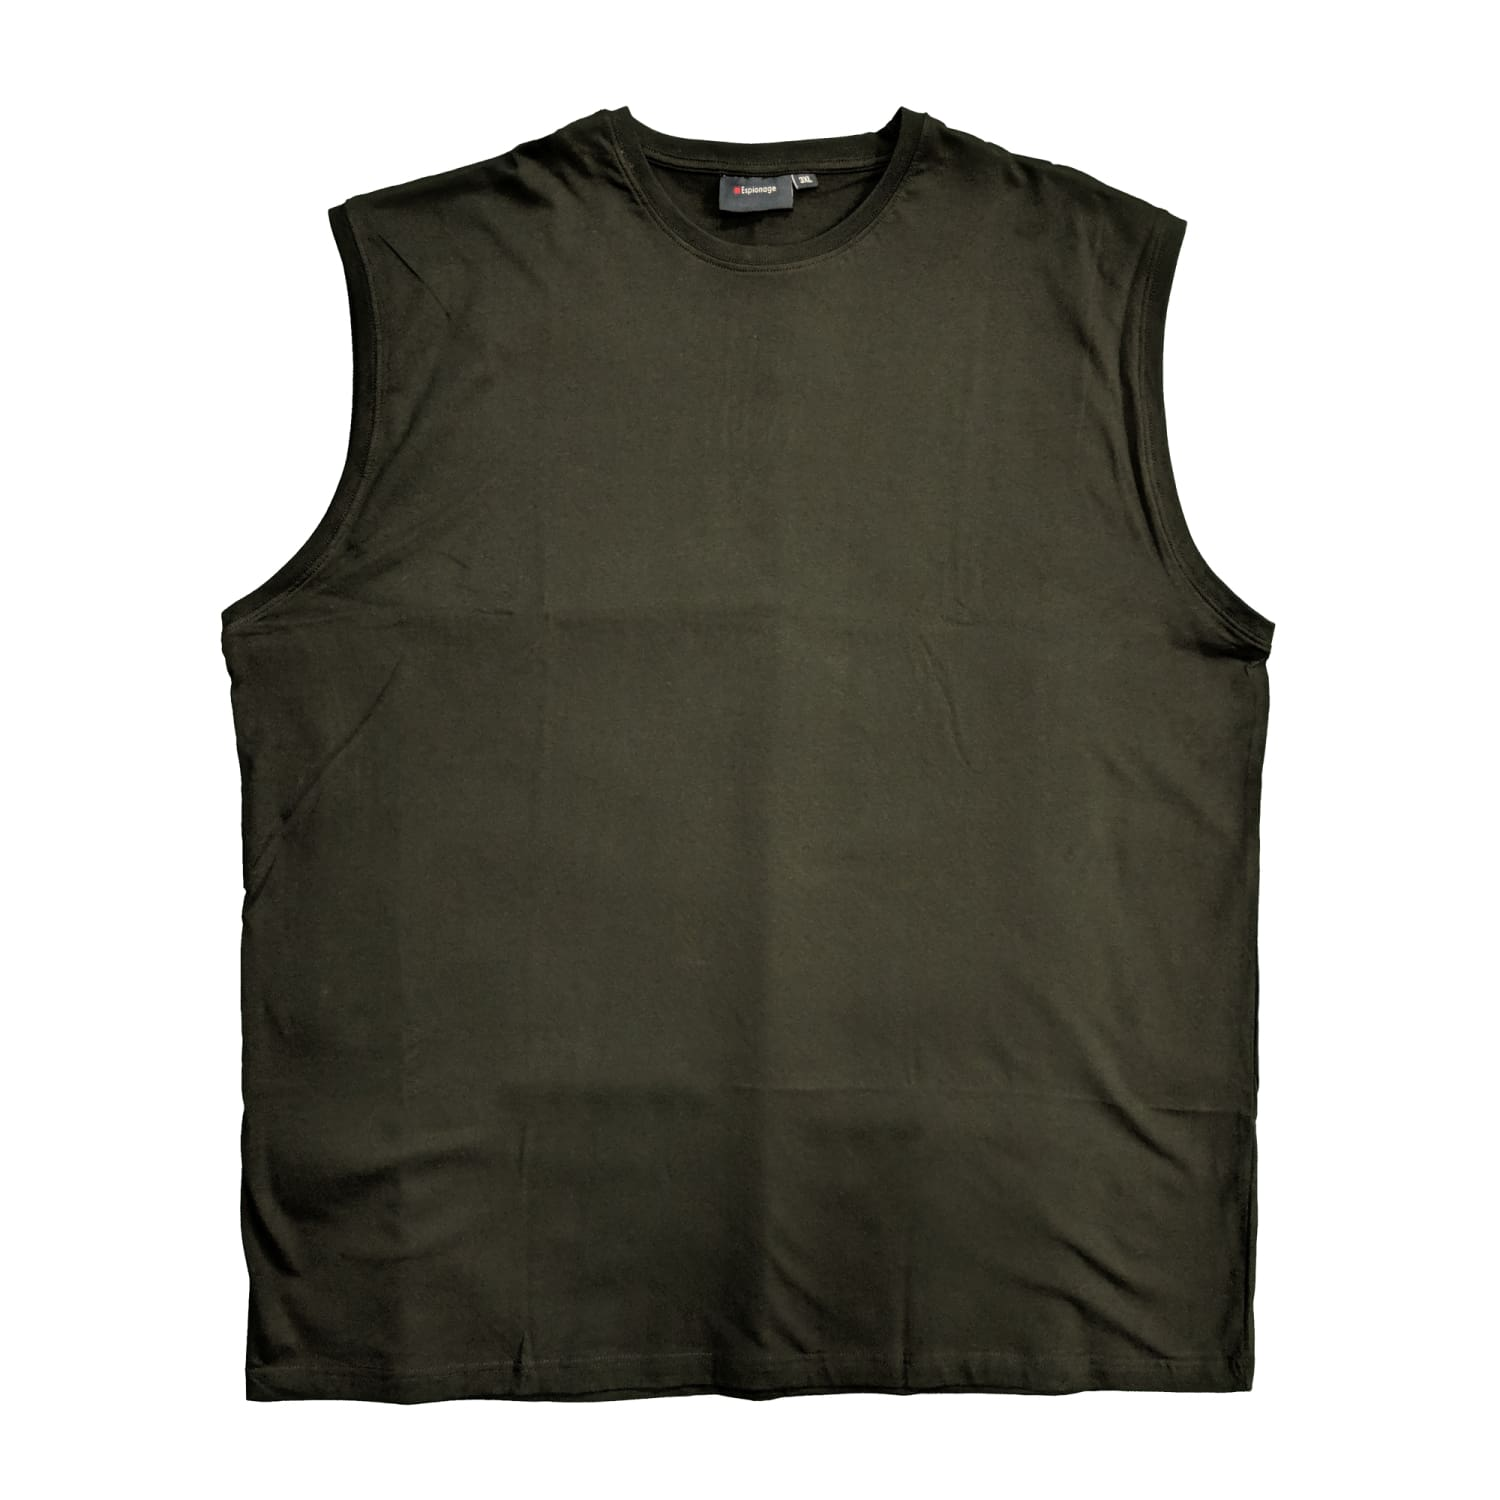 Espionage Sleeveless Tee - T113 - Black 1